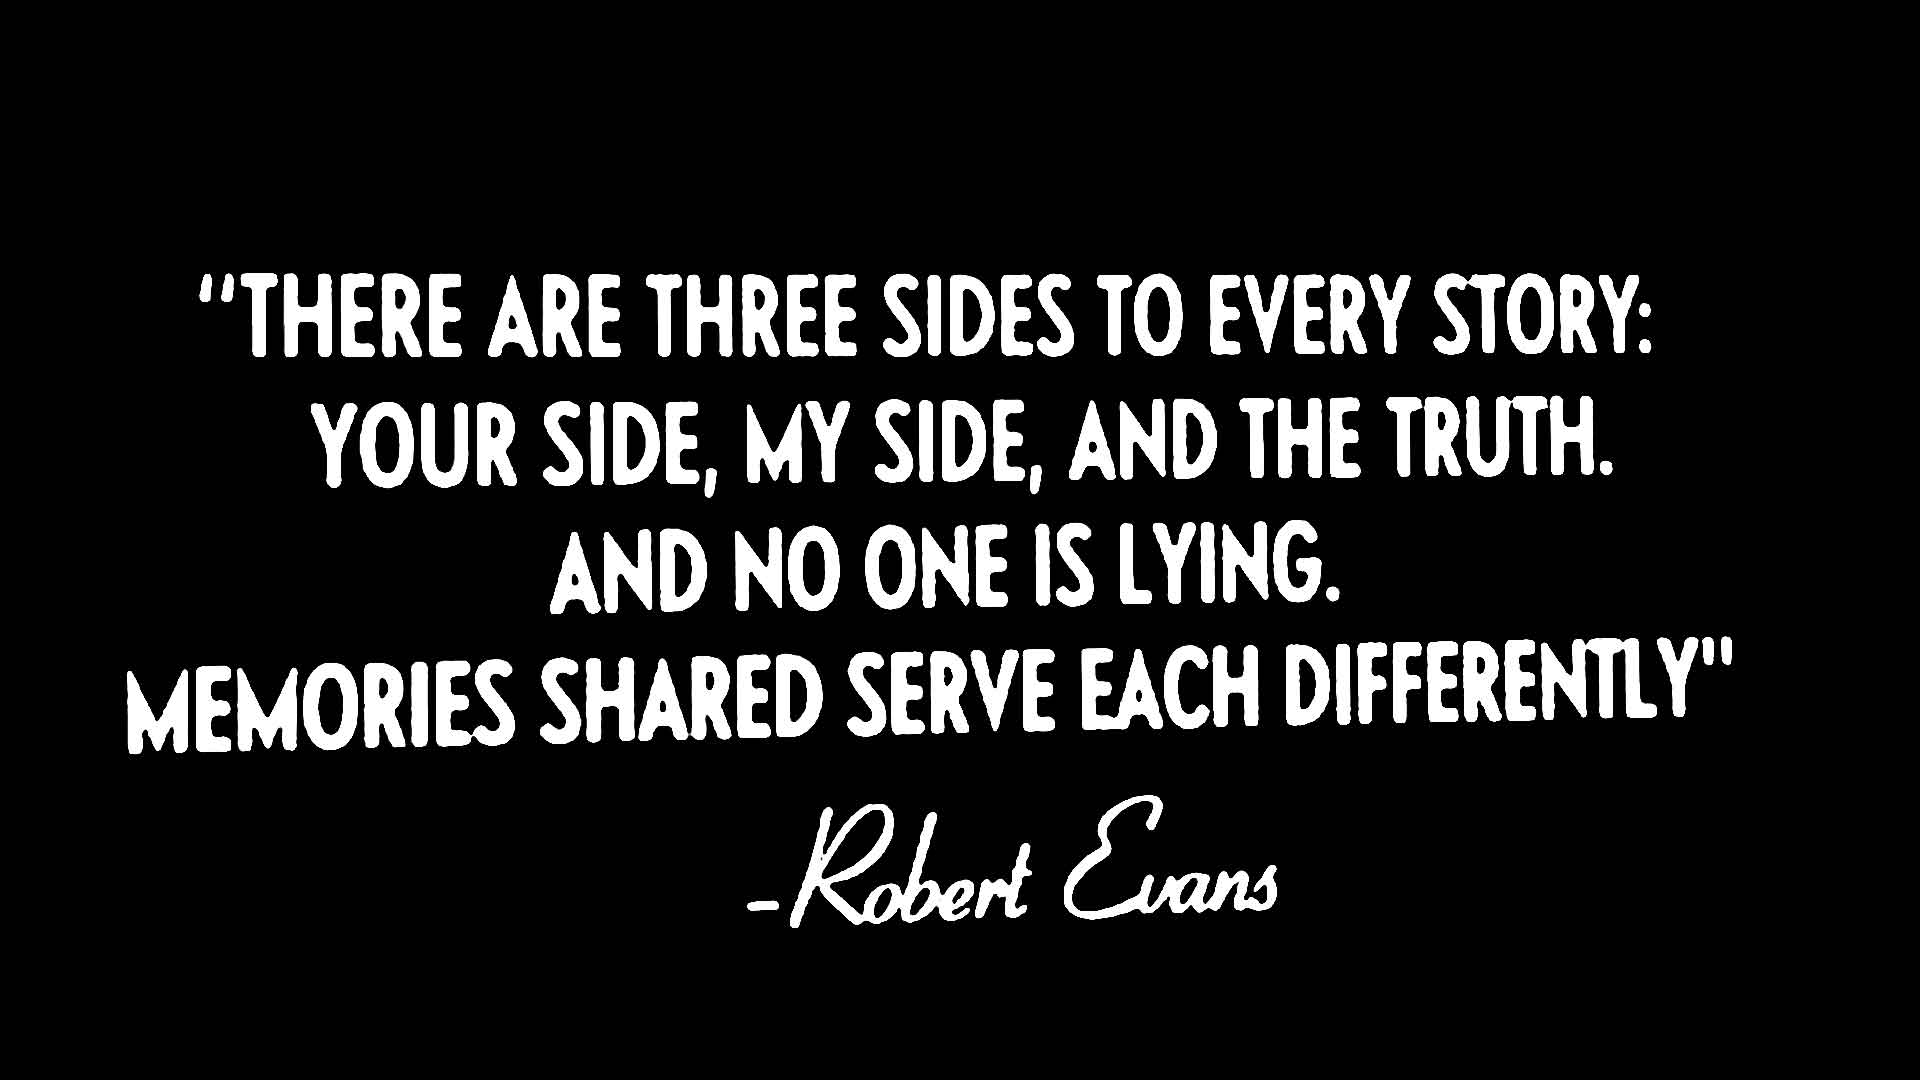 Two Sides To Every Story Quotes. QuotesGram